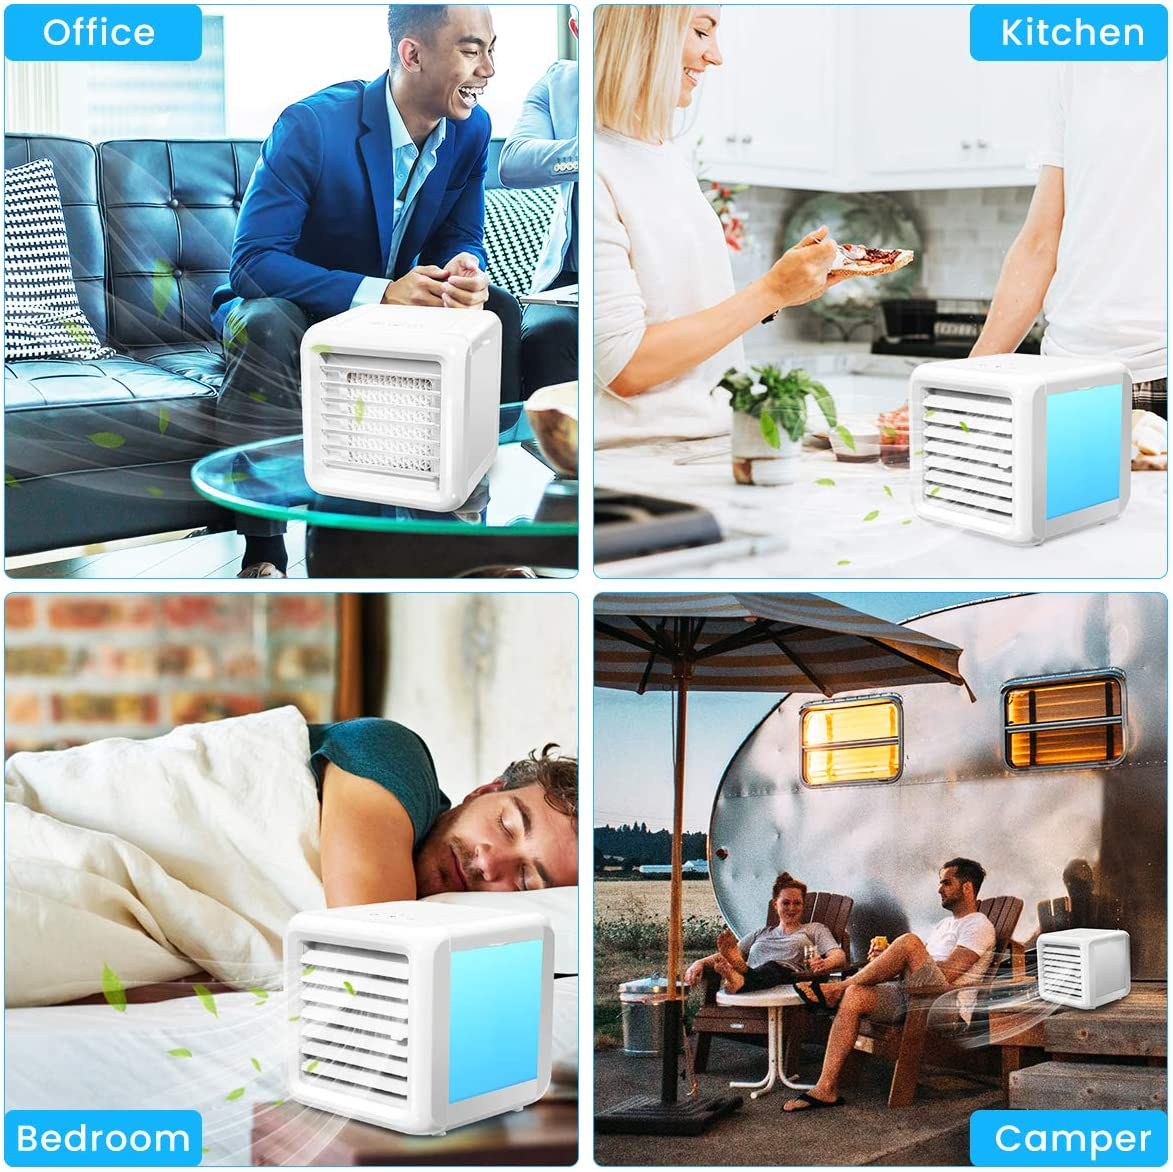 Tr/ès appropri/é pour le Bureau Baban Climatiseur Mobile 3 en 1 Mini Refroidisseur dAir Climatiseur Ventilateur de Table Silencieux Ventilateur de Table 8 LED Mode de Conversion Facile /à transporter